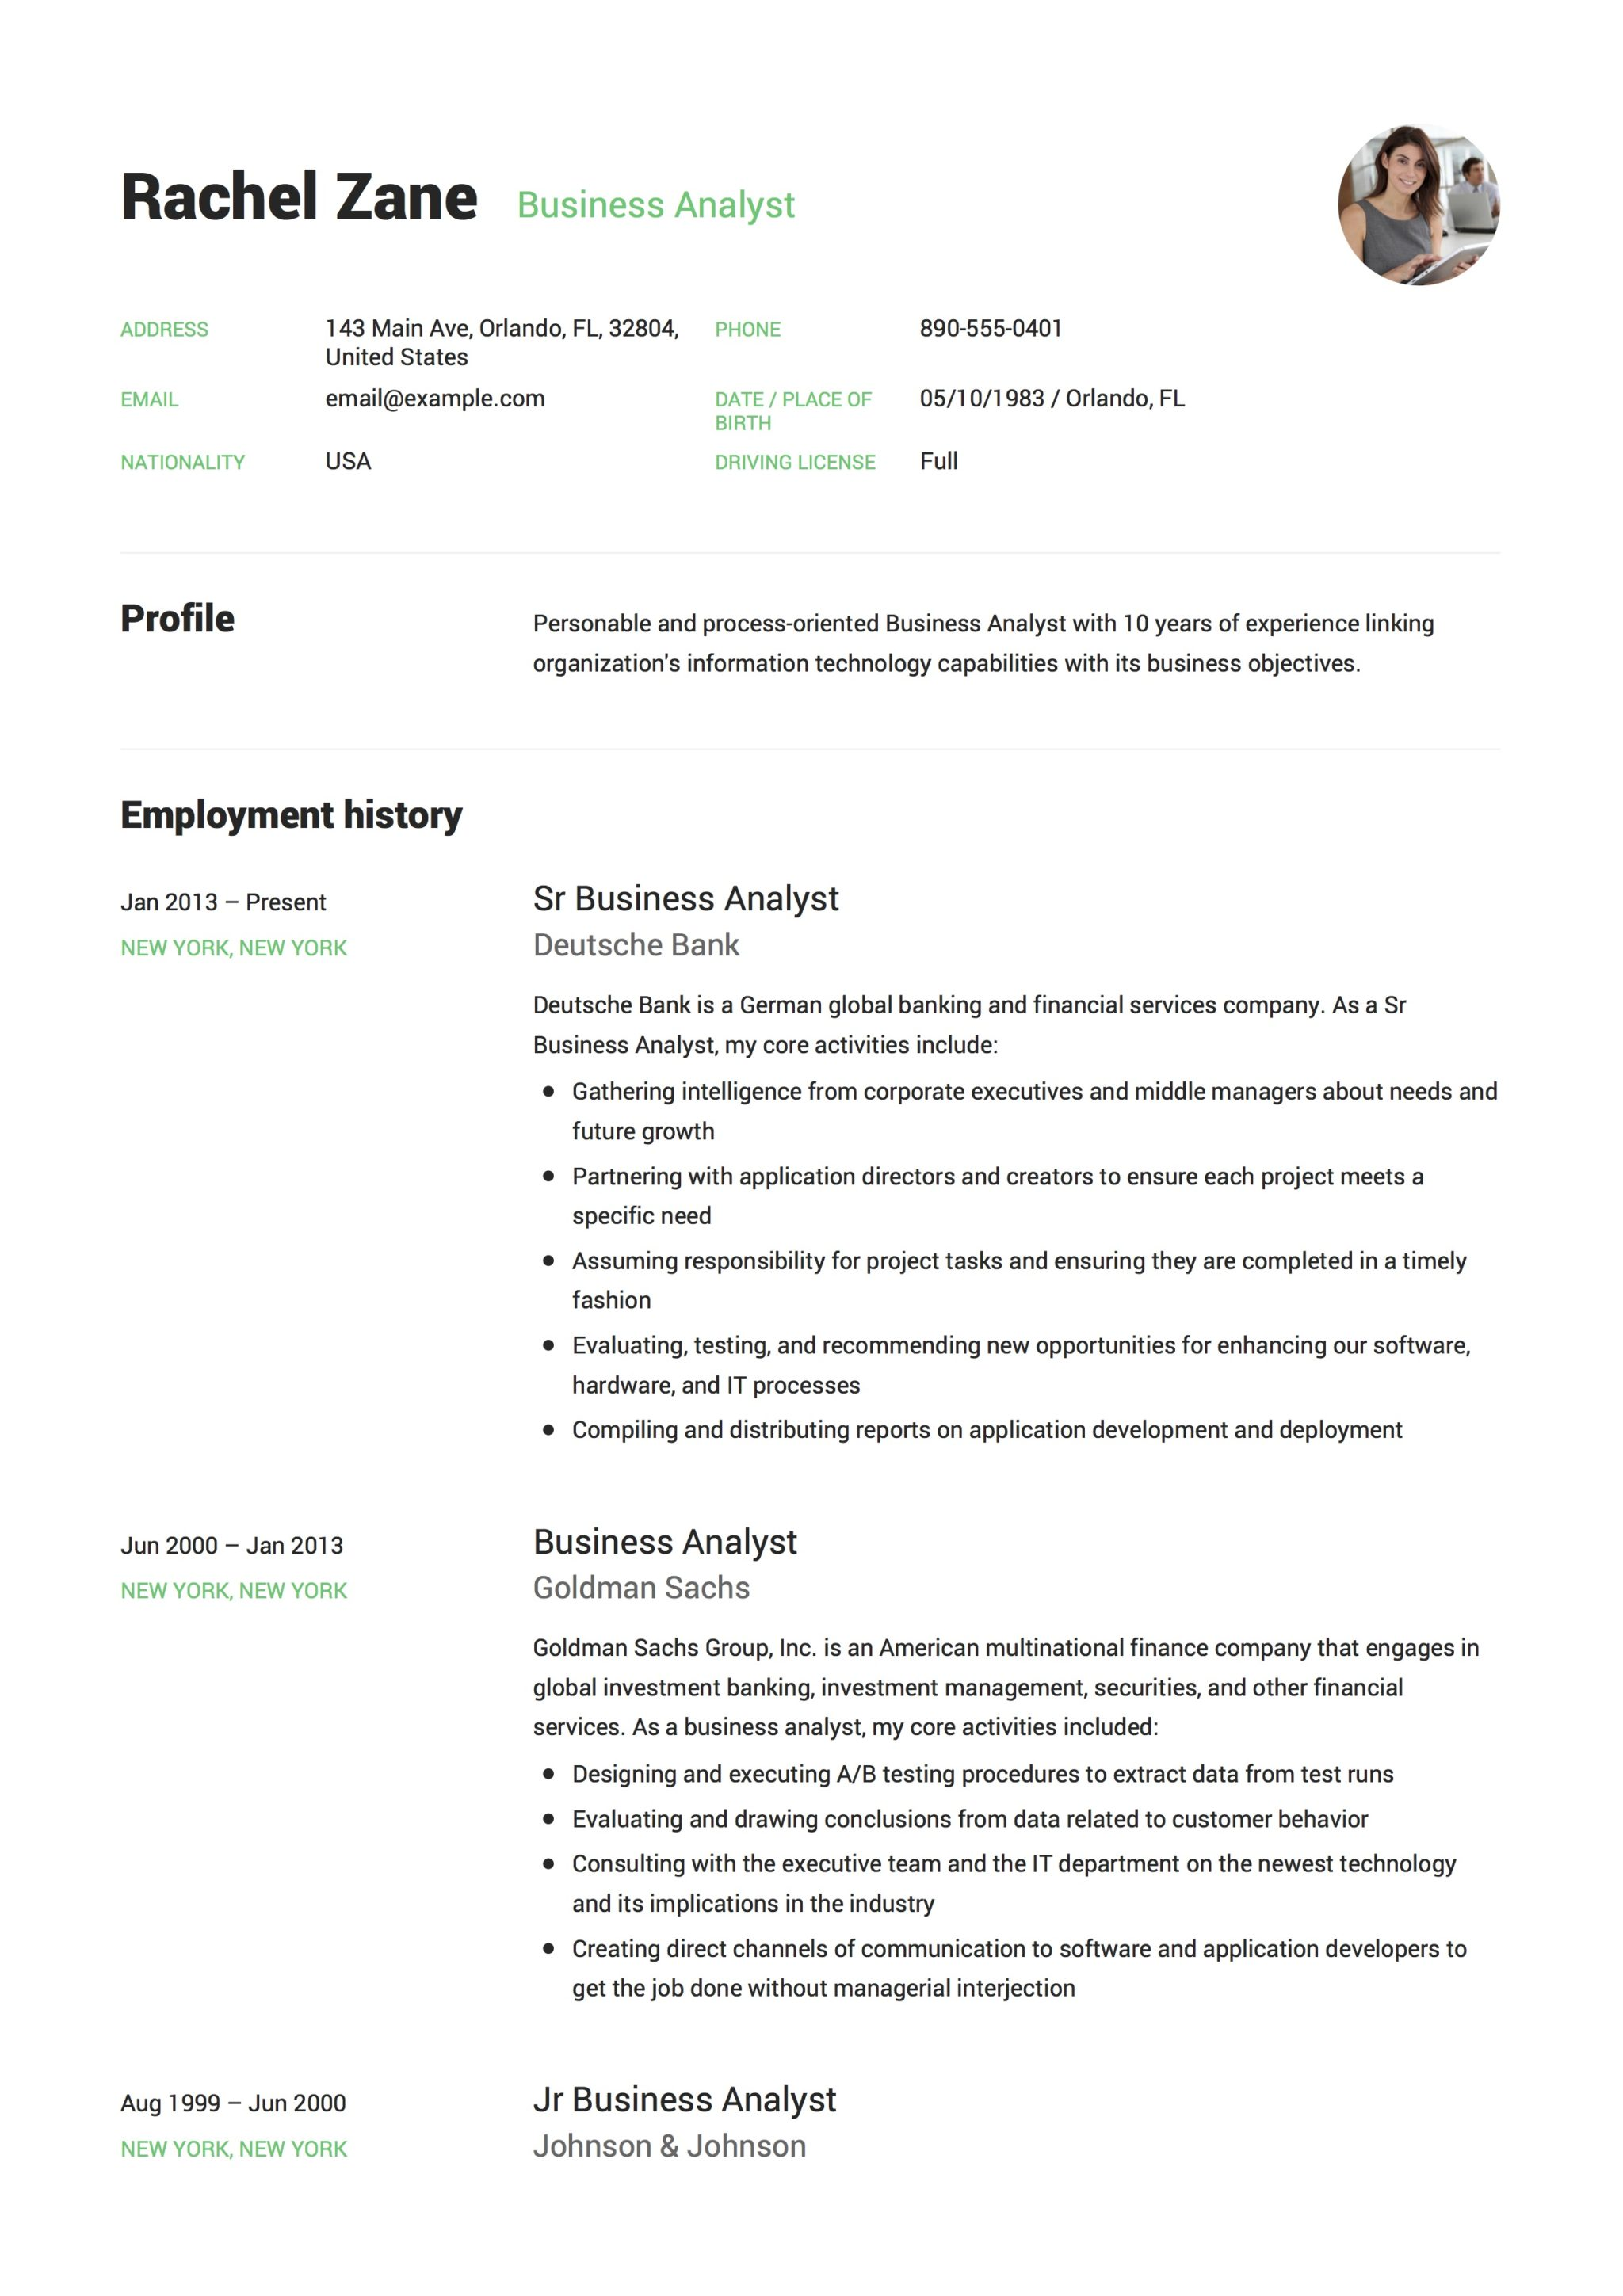 12 business analyst resume samples 2018 free downloads rachel zane resume template business analyst accmission Image collections